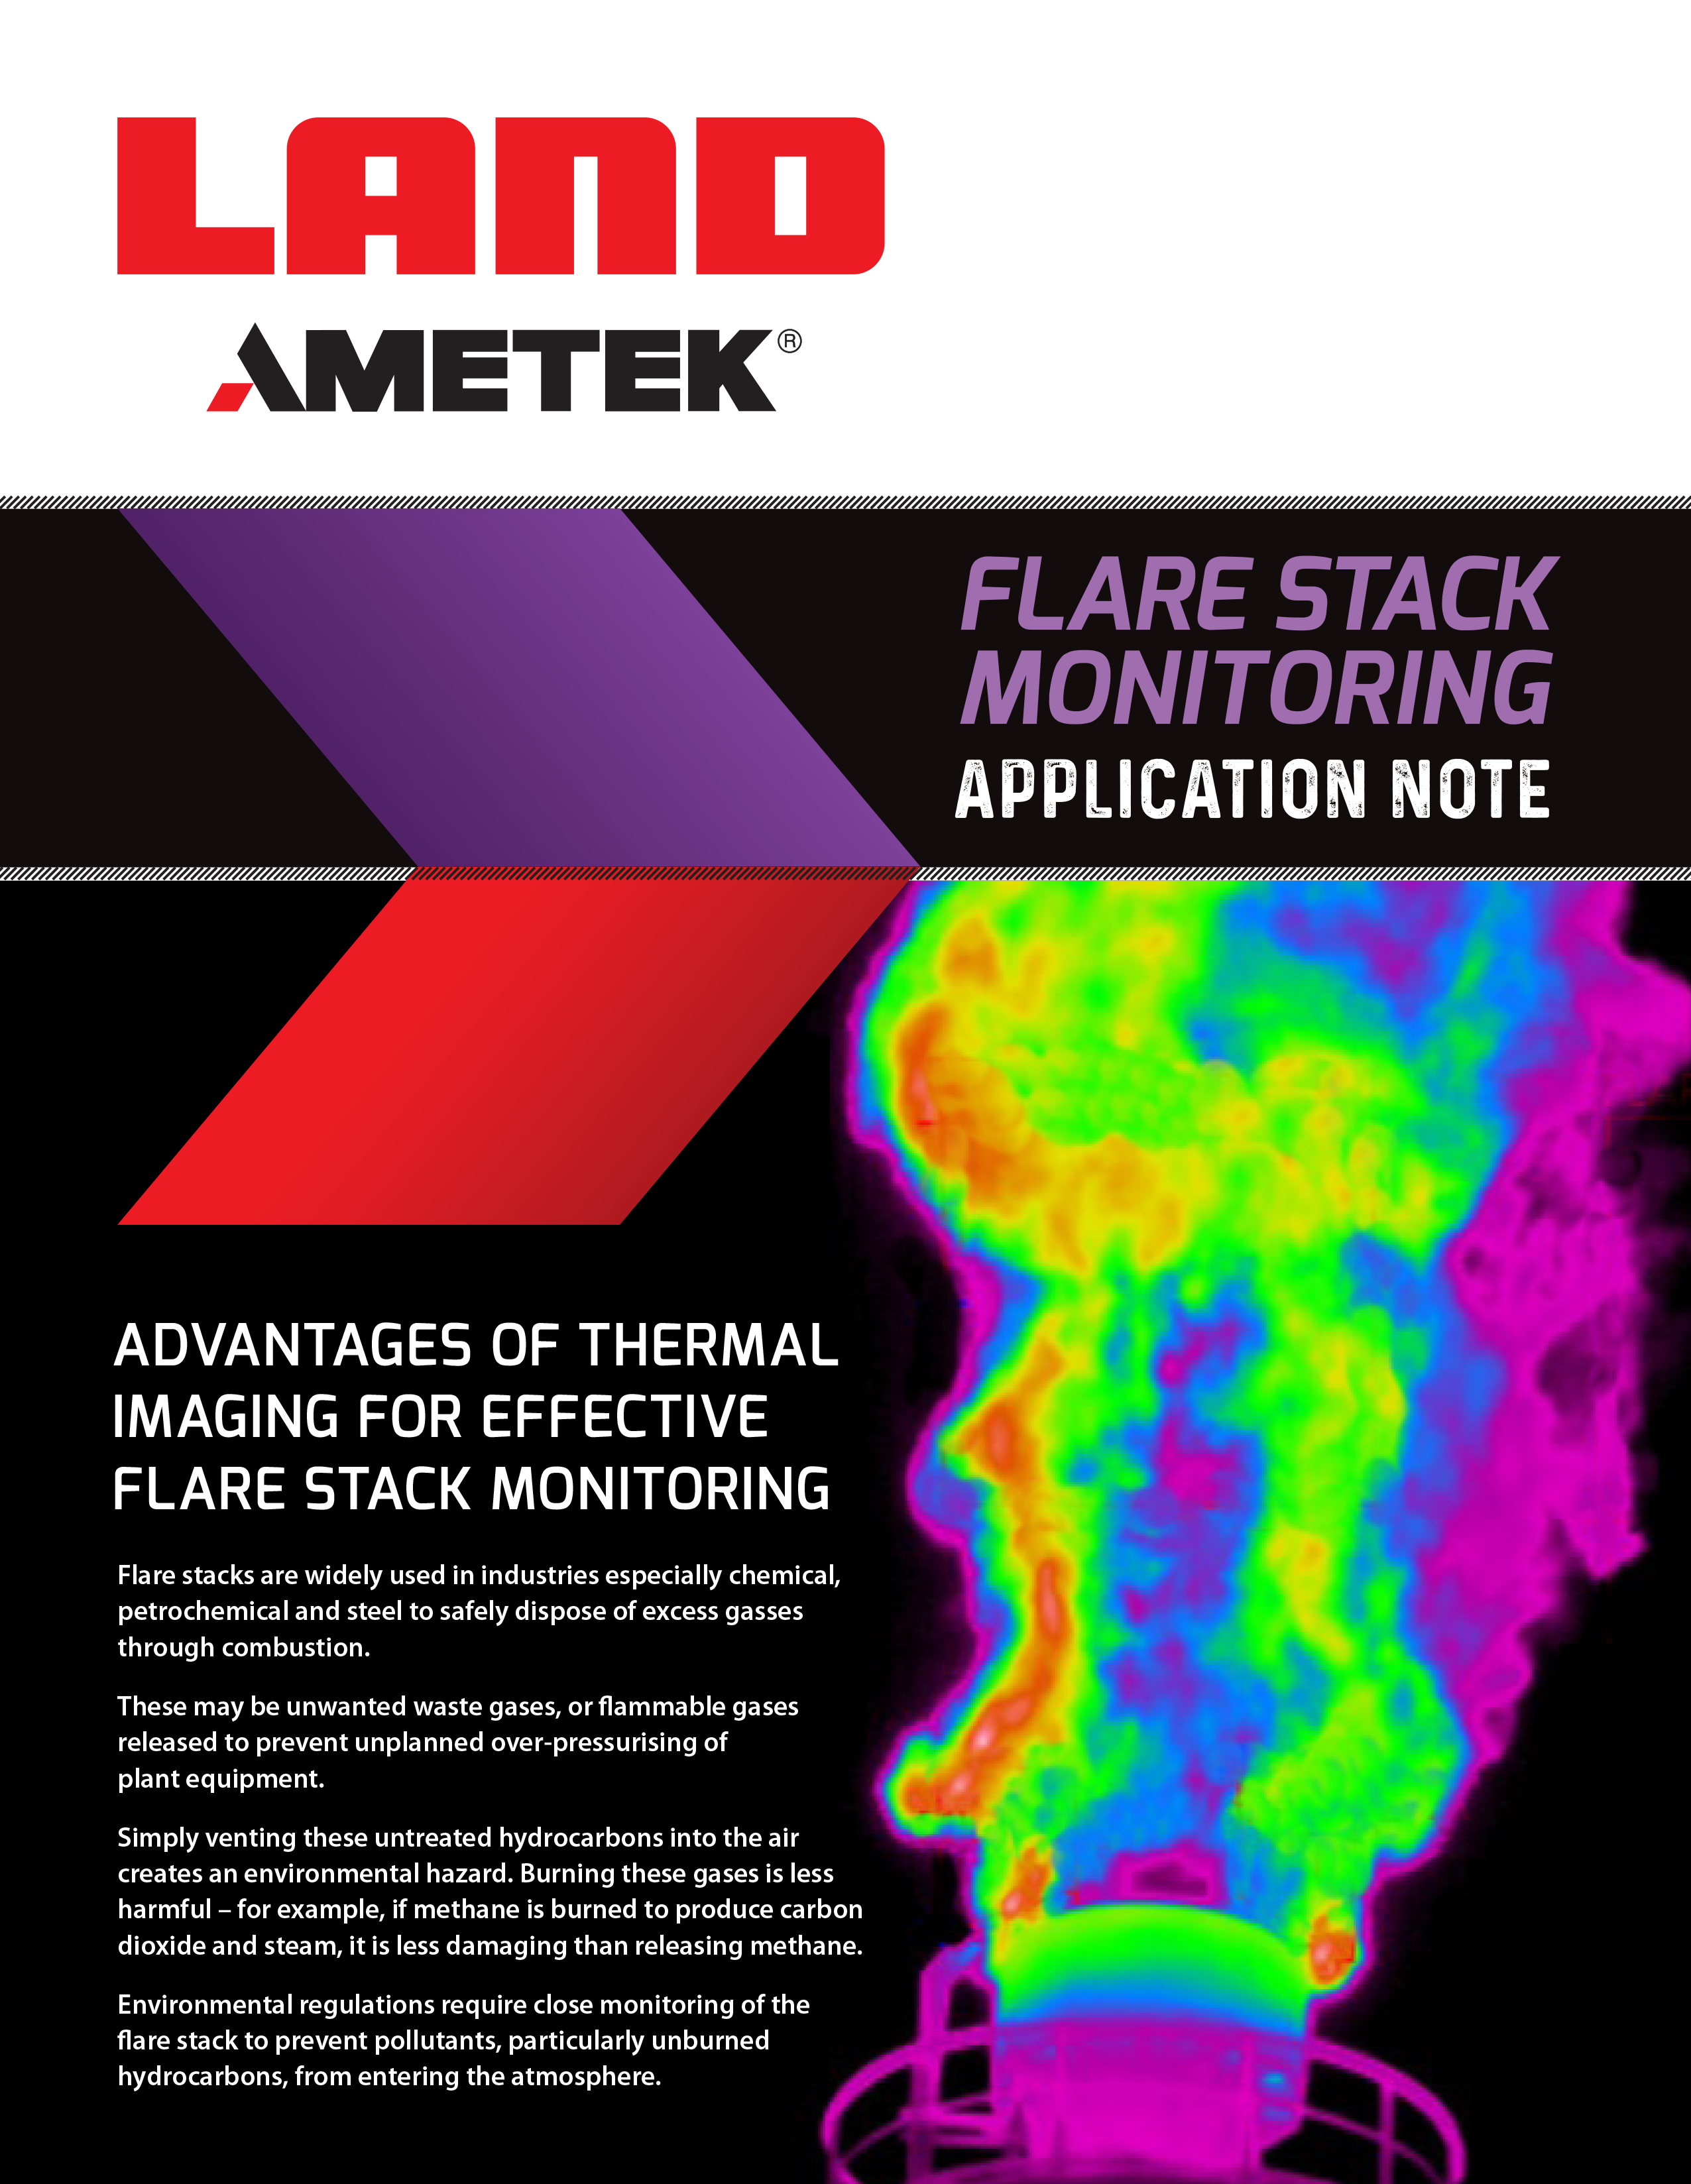 Flare Stack Monitoring Application Note (EN)